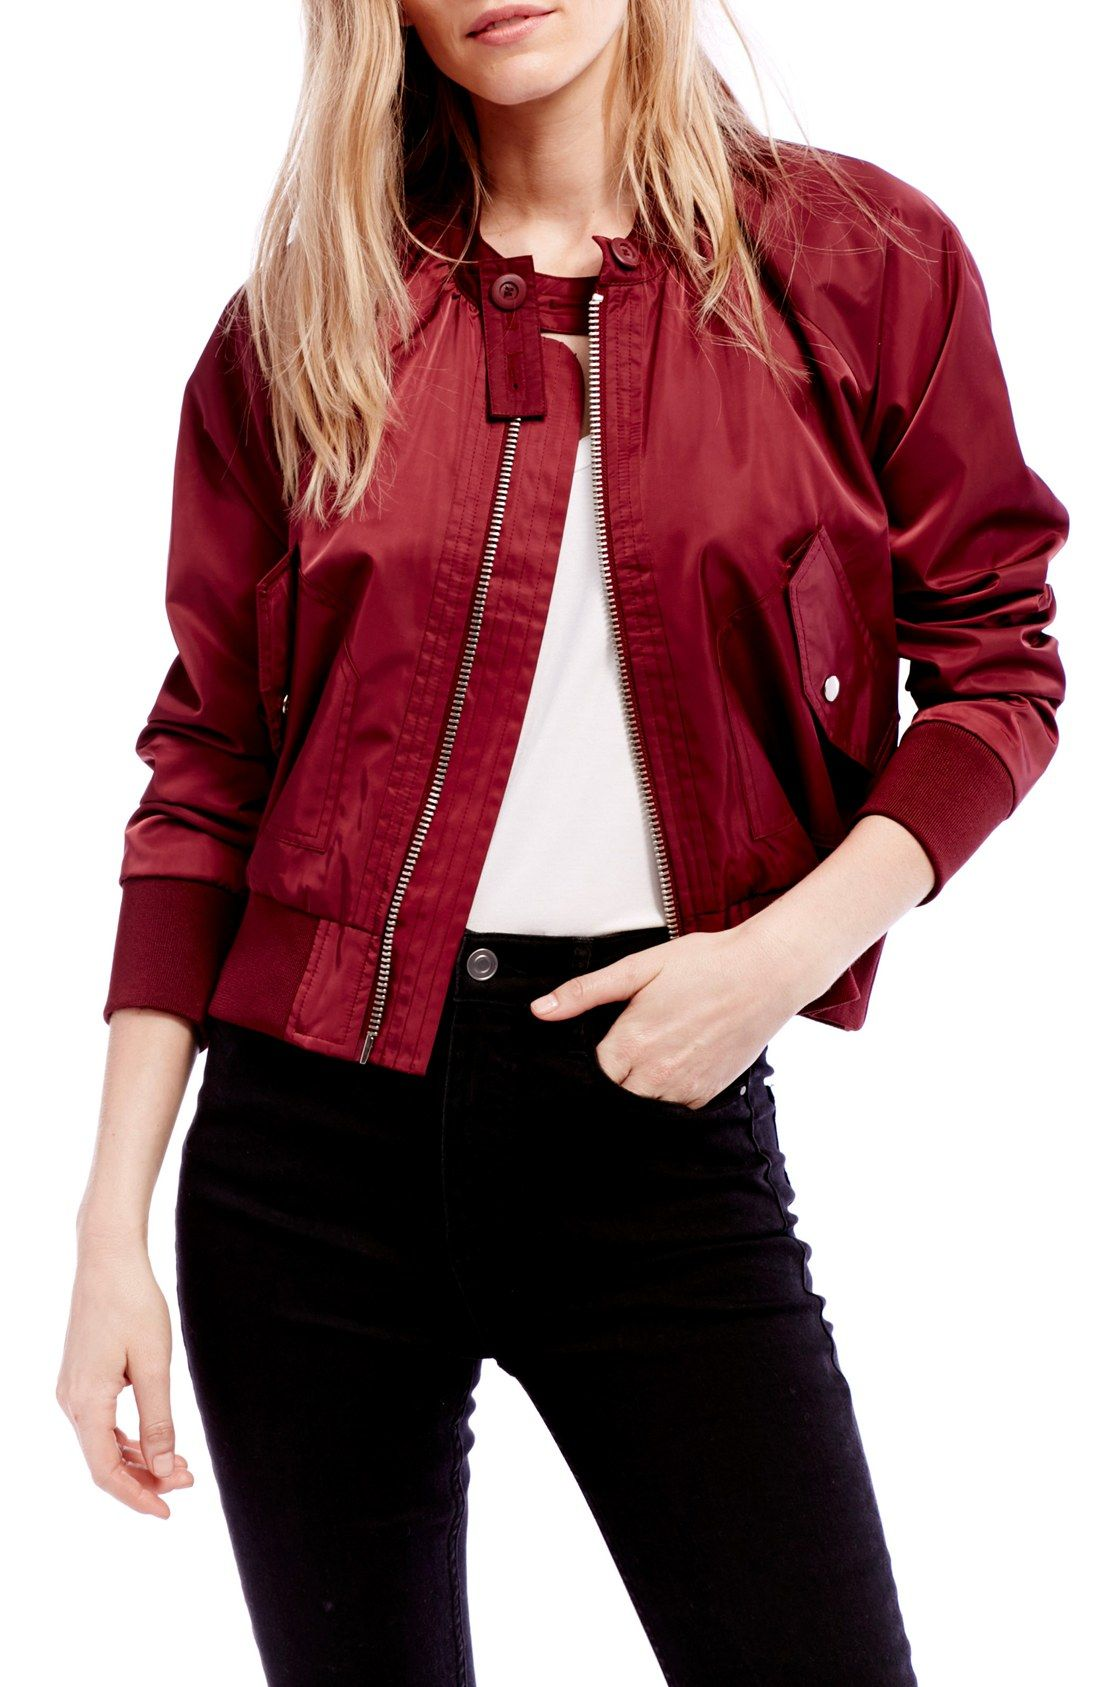 Leather jacket target - Midnight Red Bomber Jacket